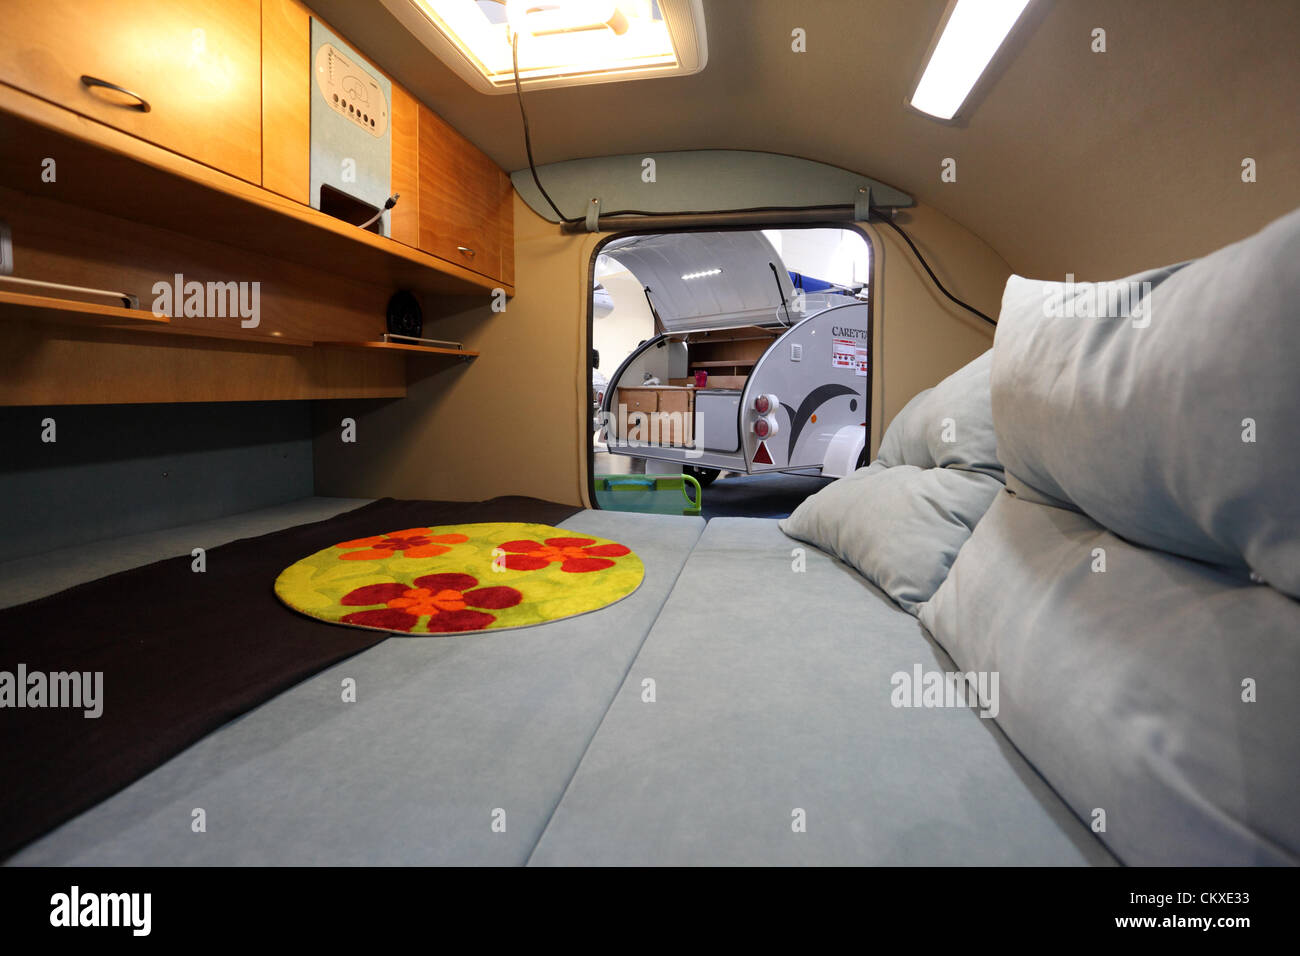 August 27 2012 In Dusseldorf Germany Interior Of A Small Camper Van At